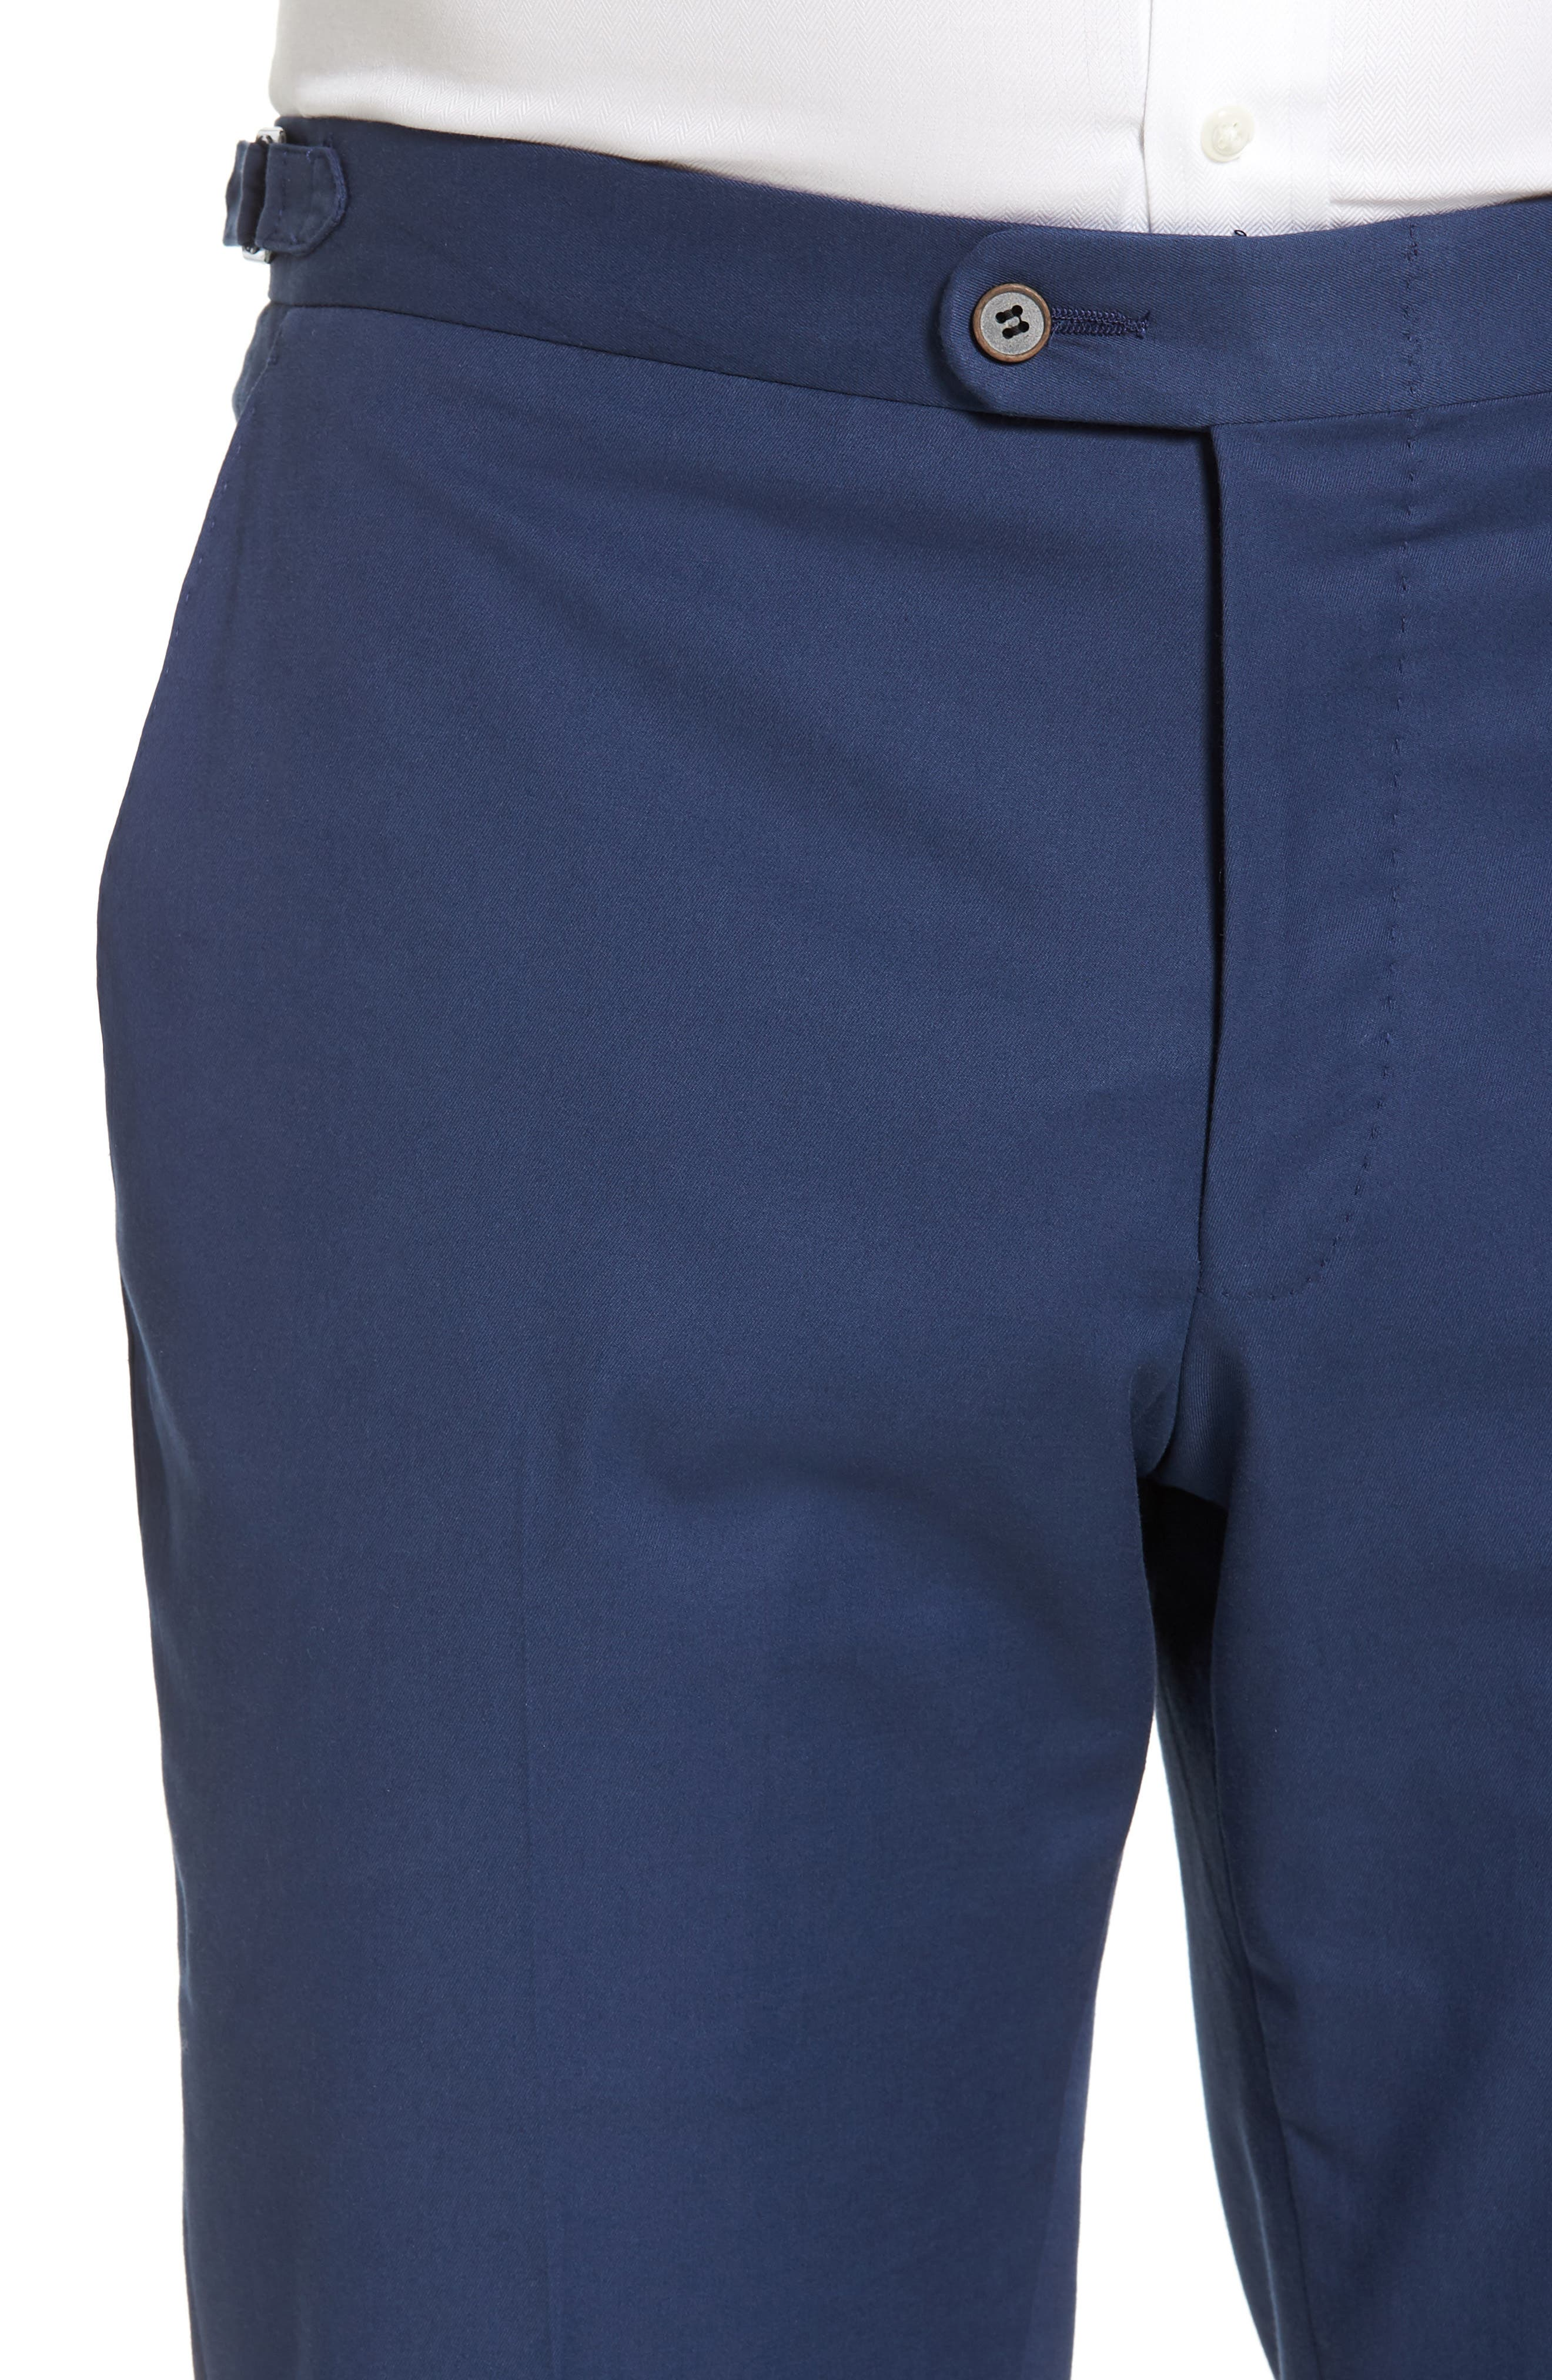 Flat Front Solid Stretch Cotton Trousers,                             Alternate thumbnail 4, color,                             422